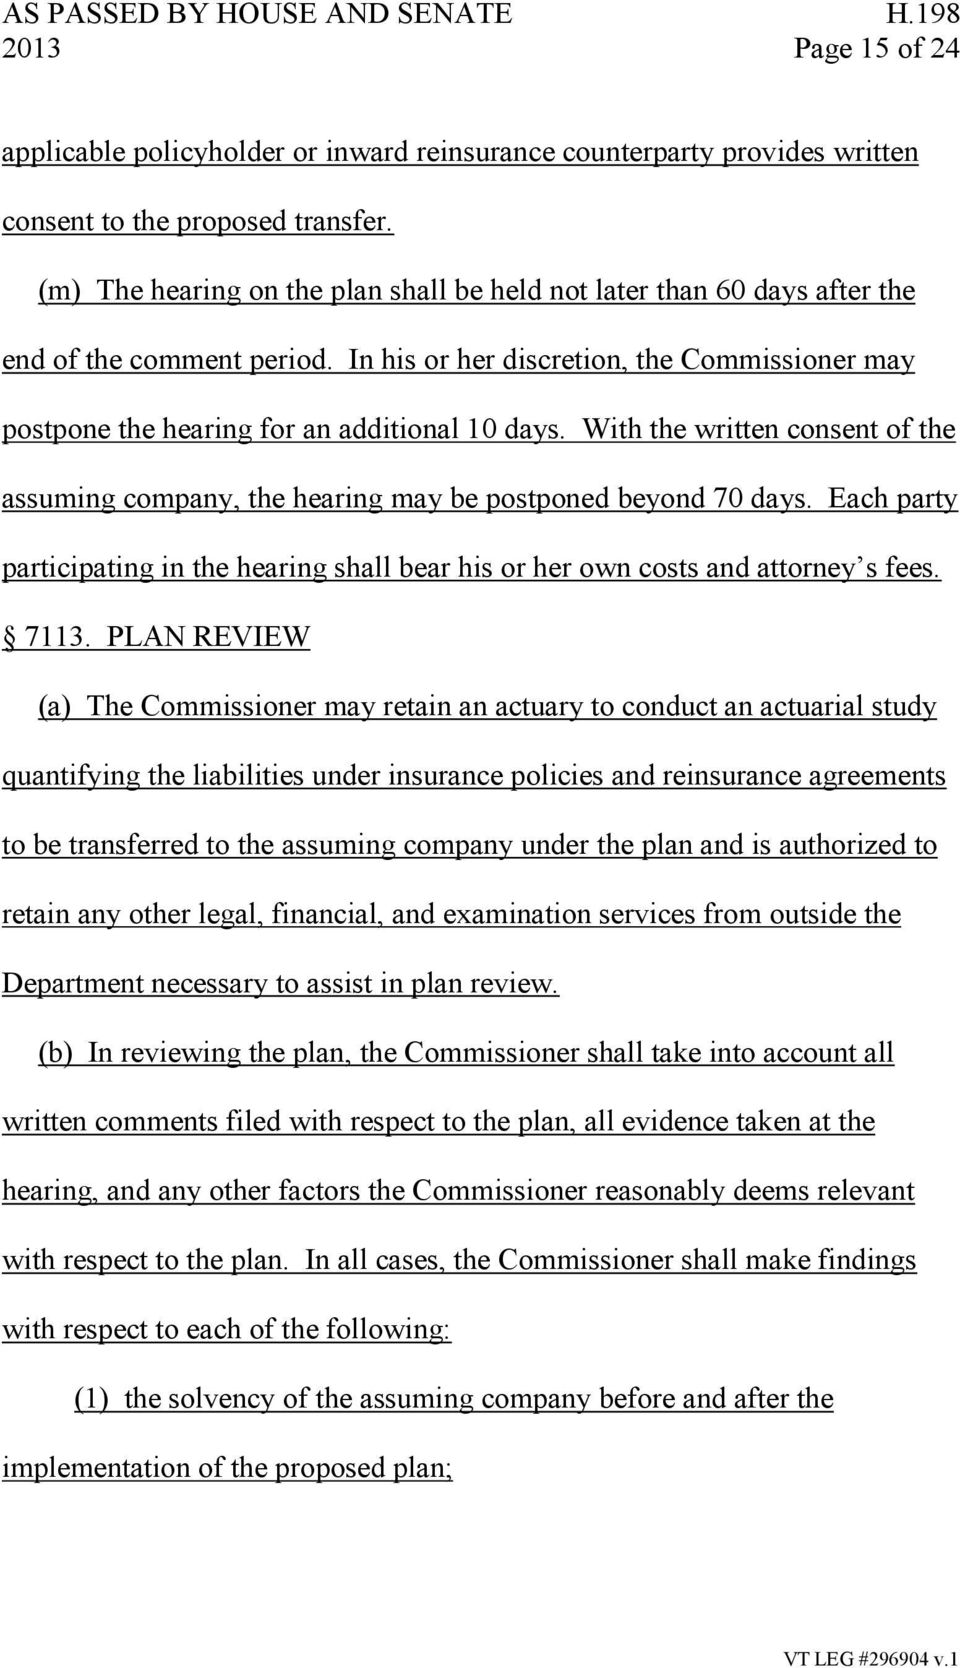 With the written consent of the assuming company, the hearing may be postponed beyond 70 days. Each party participating in the hearing shall bear his or her own costs and attorney s fees. 7113.